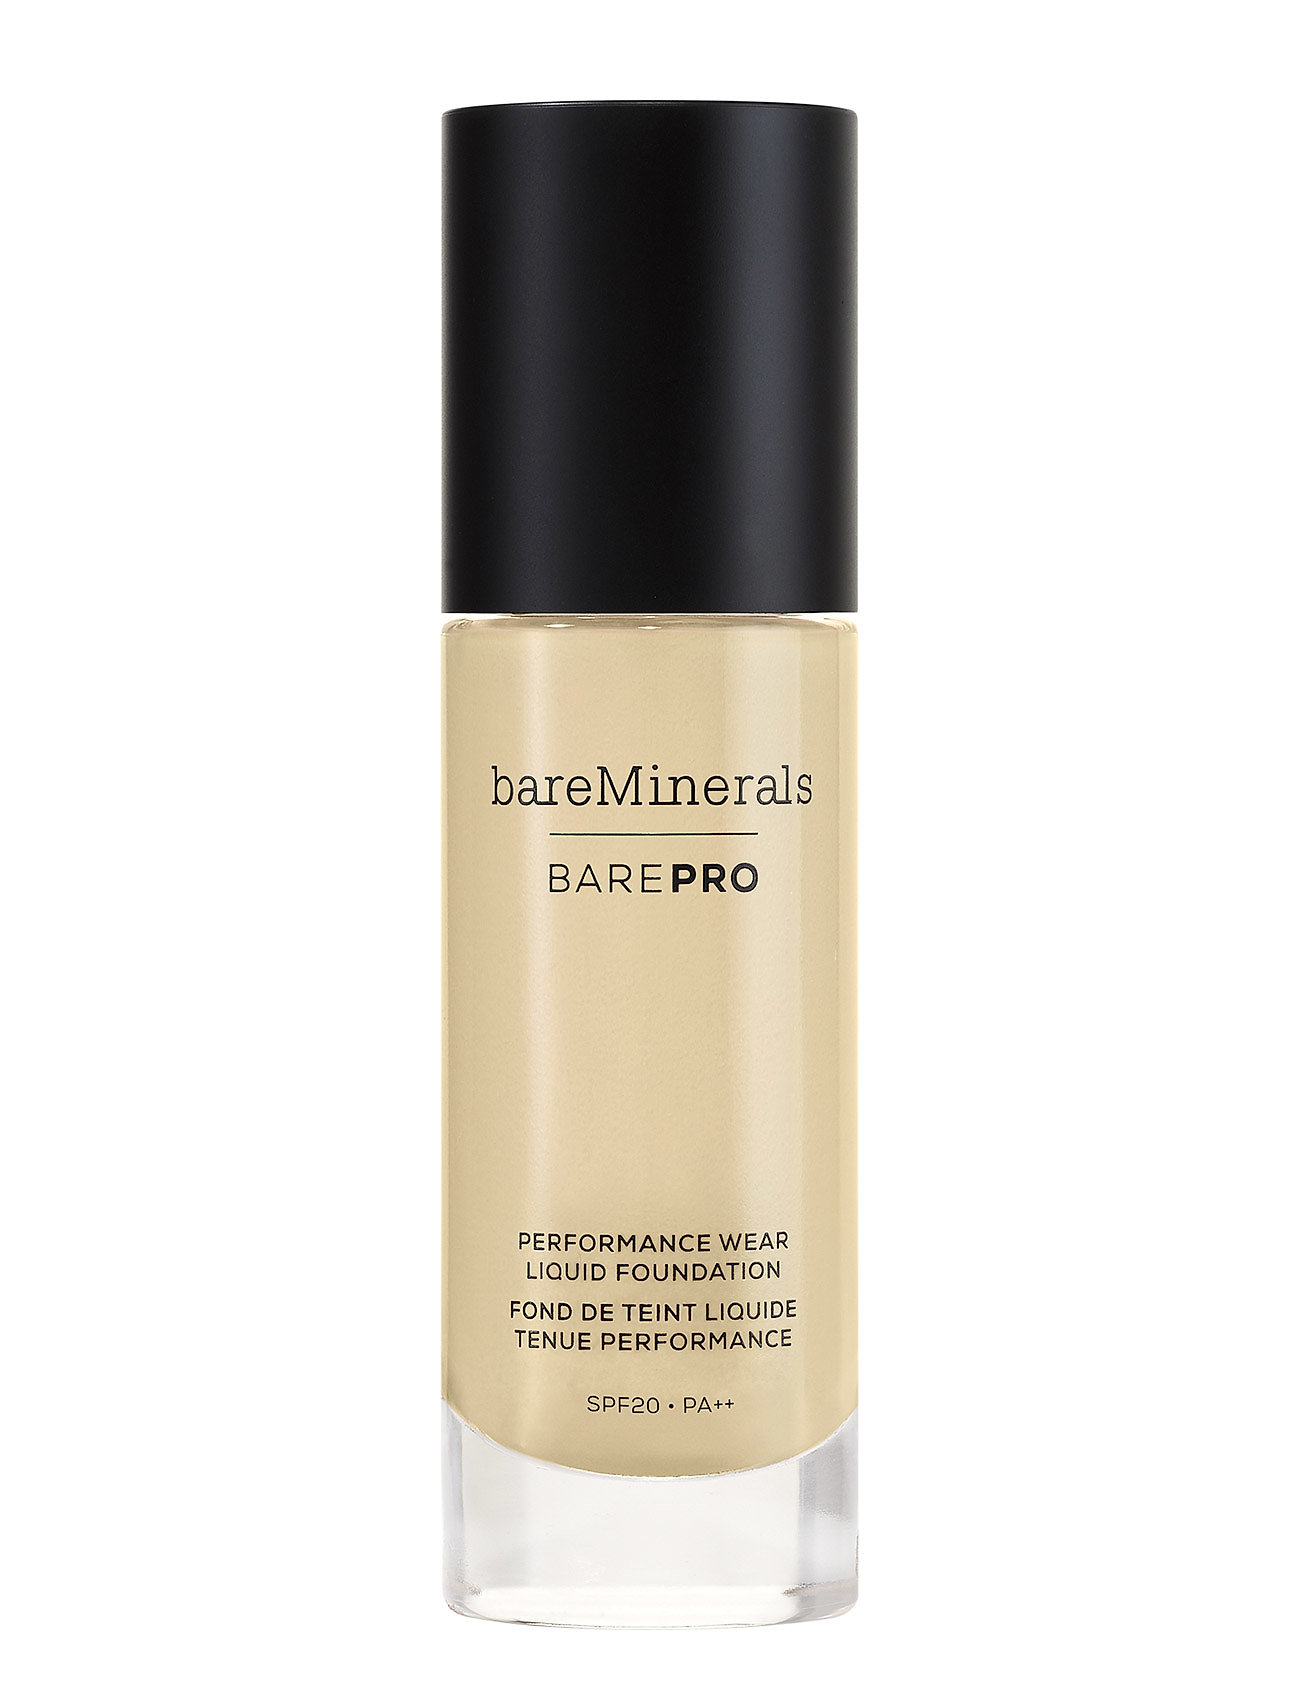 Image of Barepro Performance Wear Liquid Foundation Spf 20 Foundation Makeup BareMinerals (3067521633)